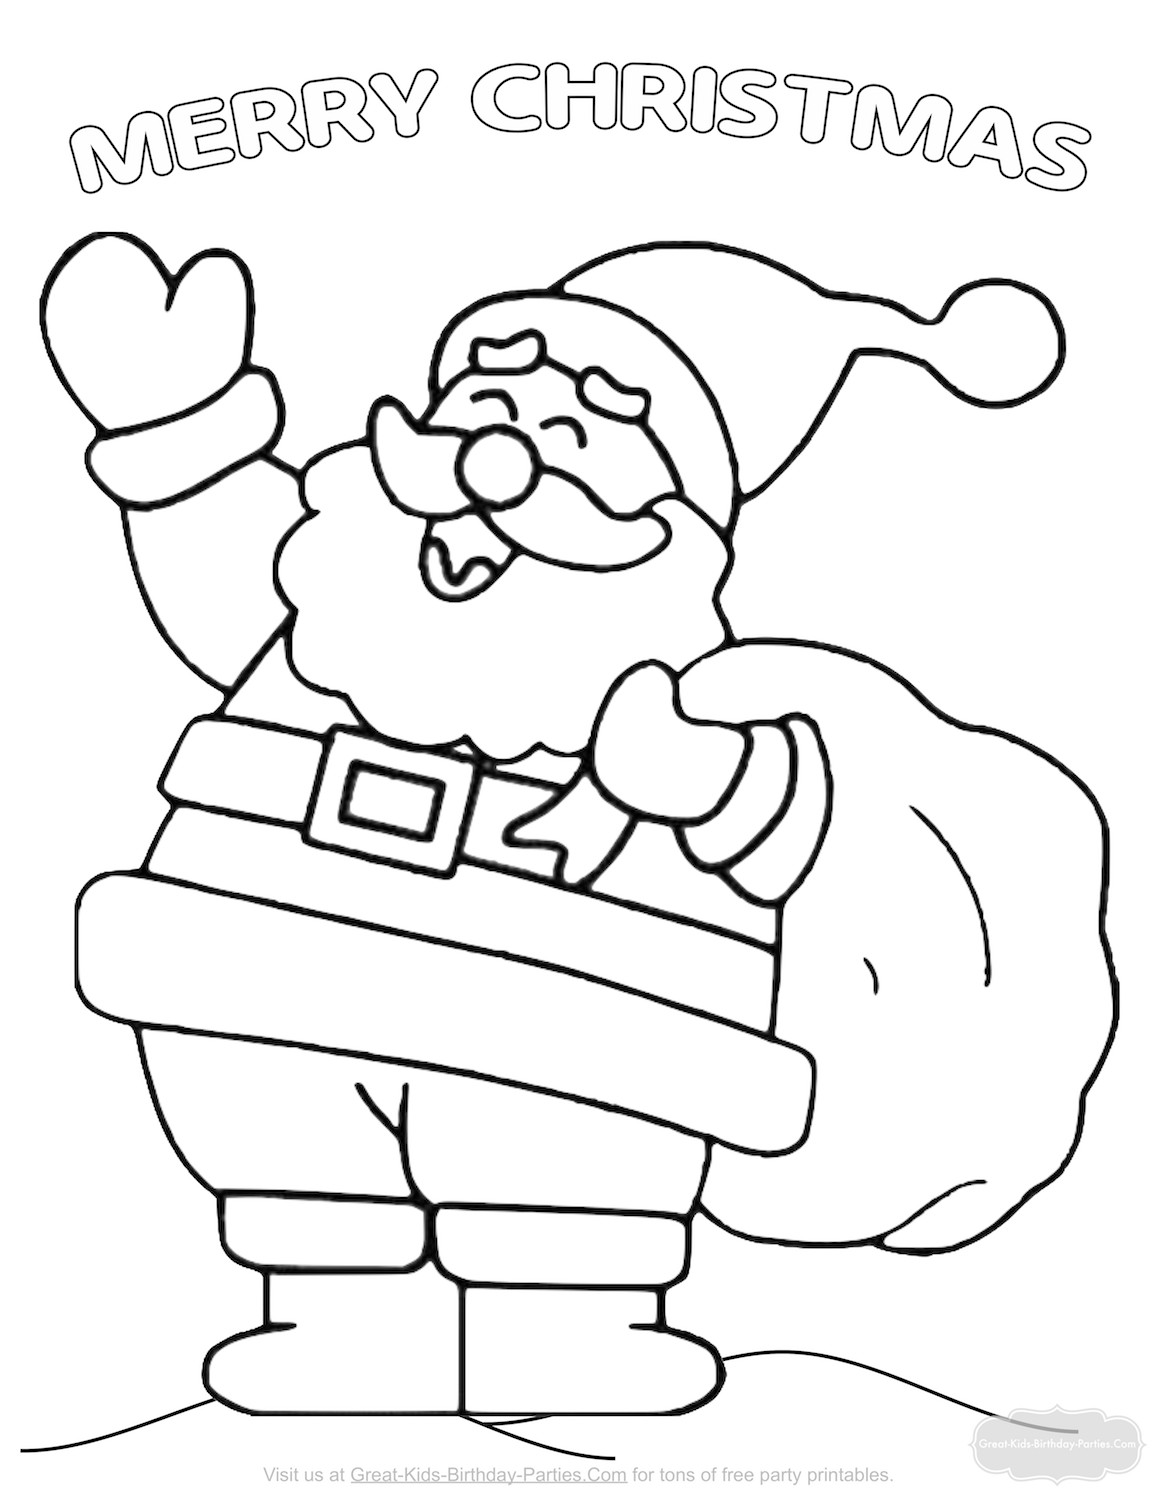 Christmas Coloring Pages Santa Coloring Pages Christmas Coloring Pages Printable Christmas Coloring Pages